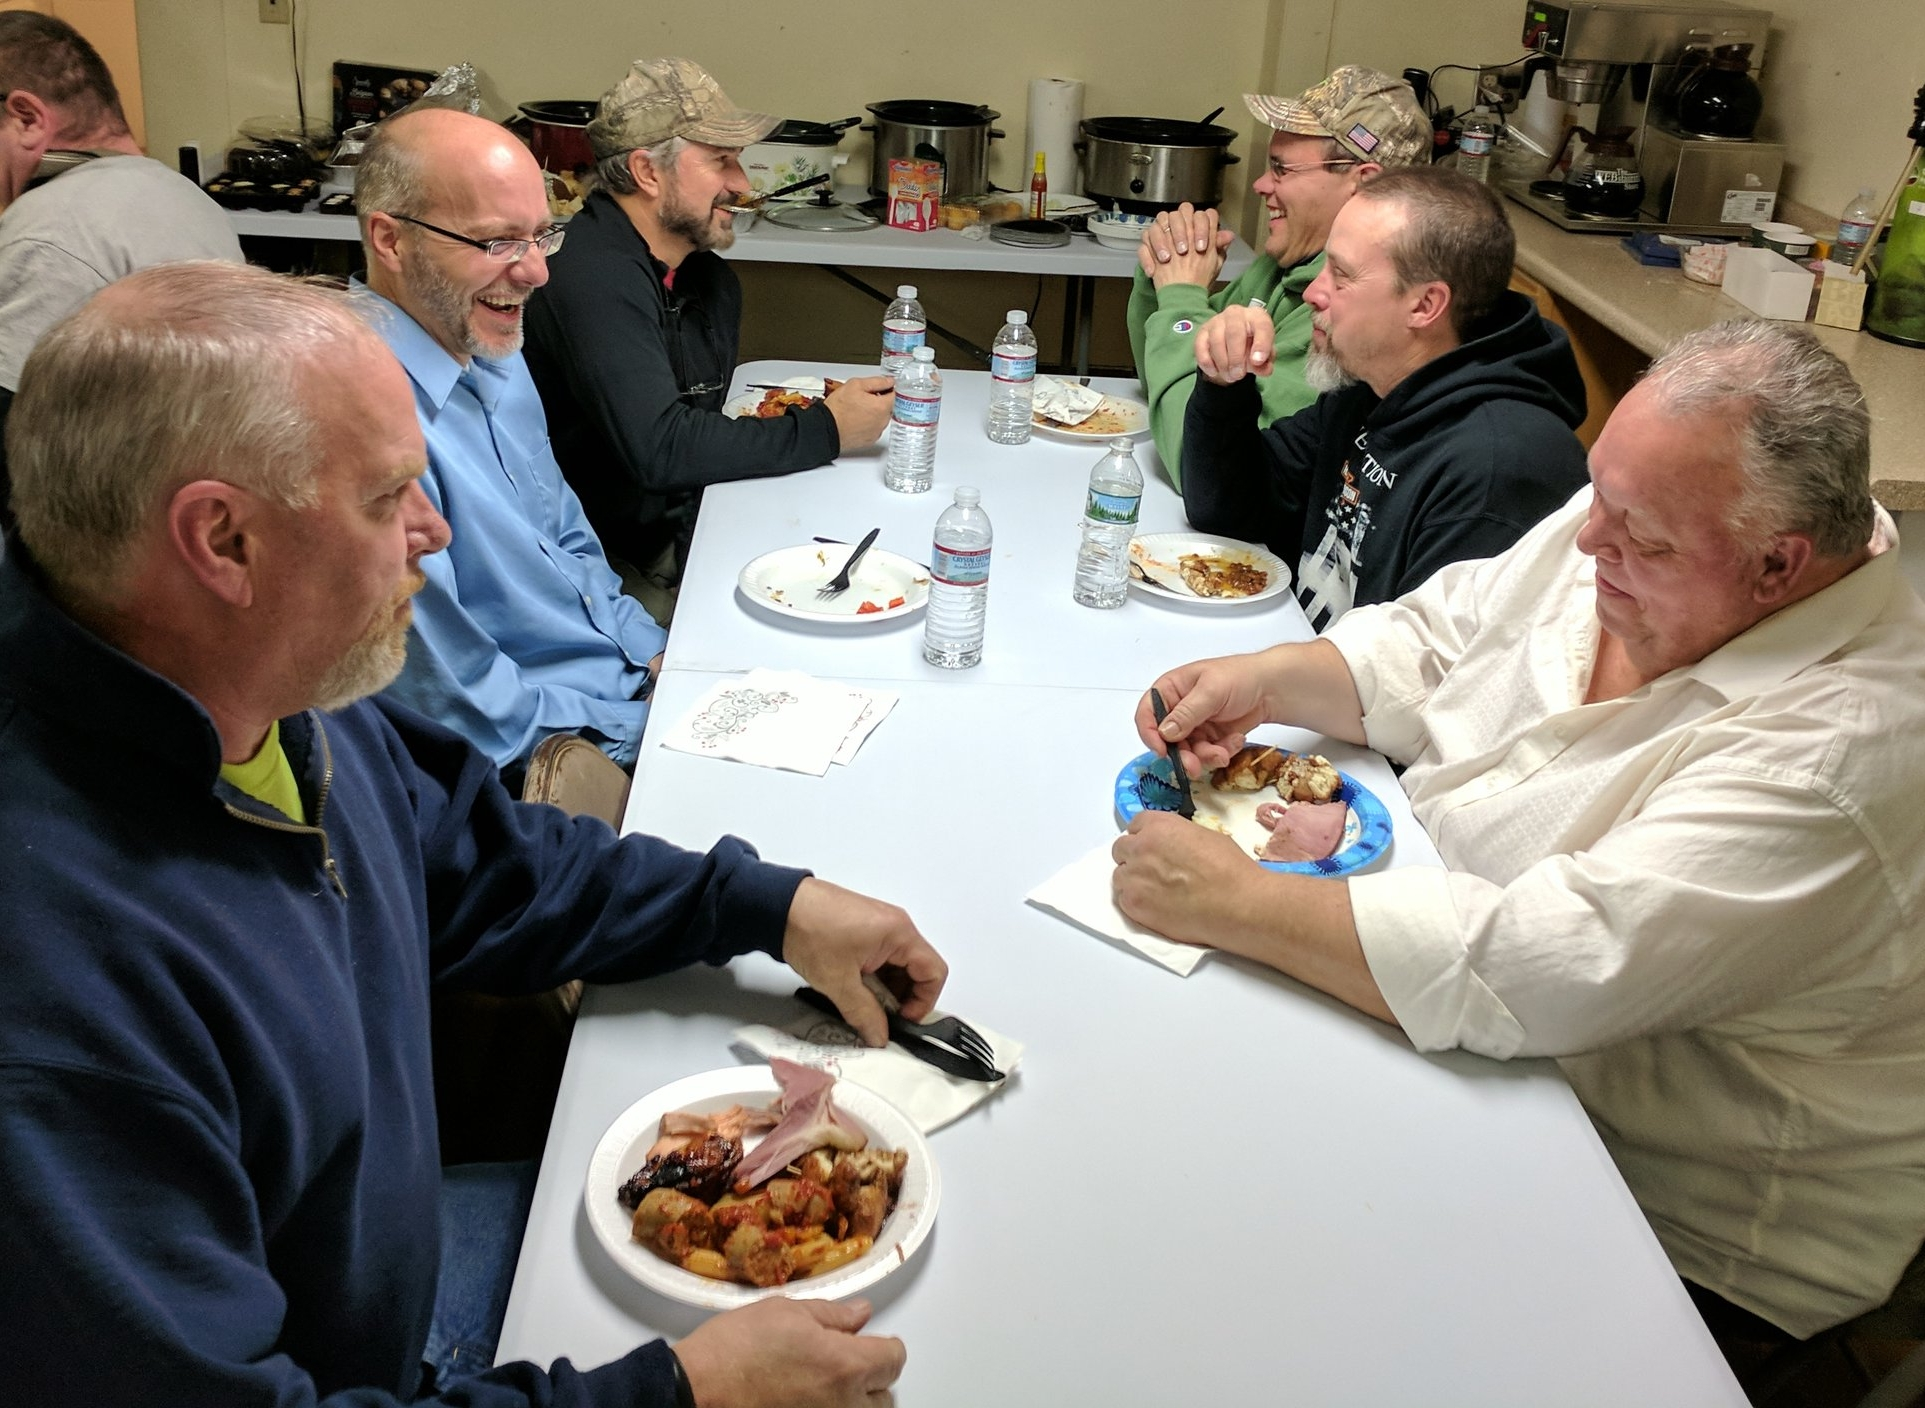 """A few of the guys enjoying time together at the """"Men's Christmas Feast!"""""""